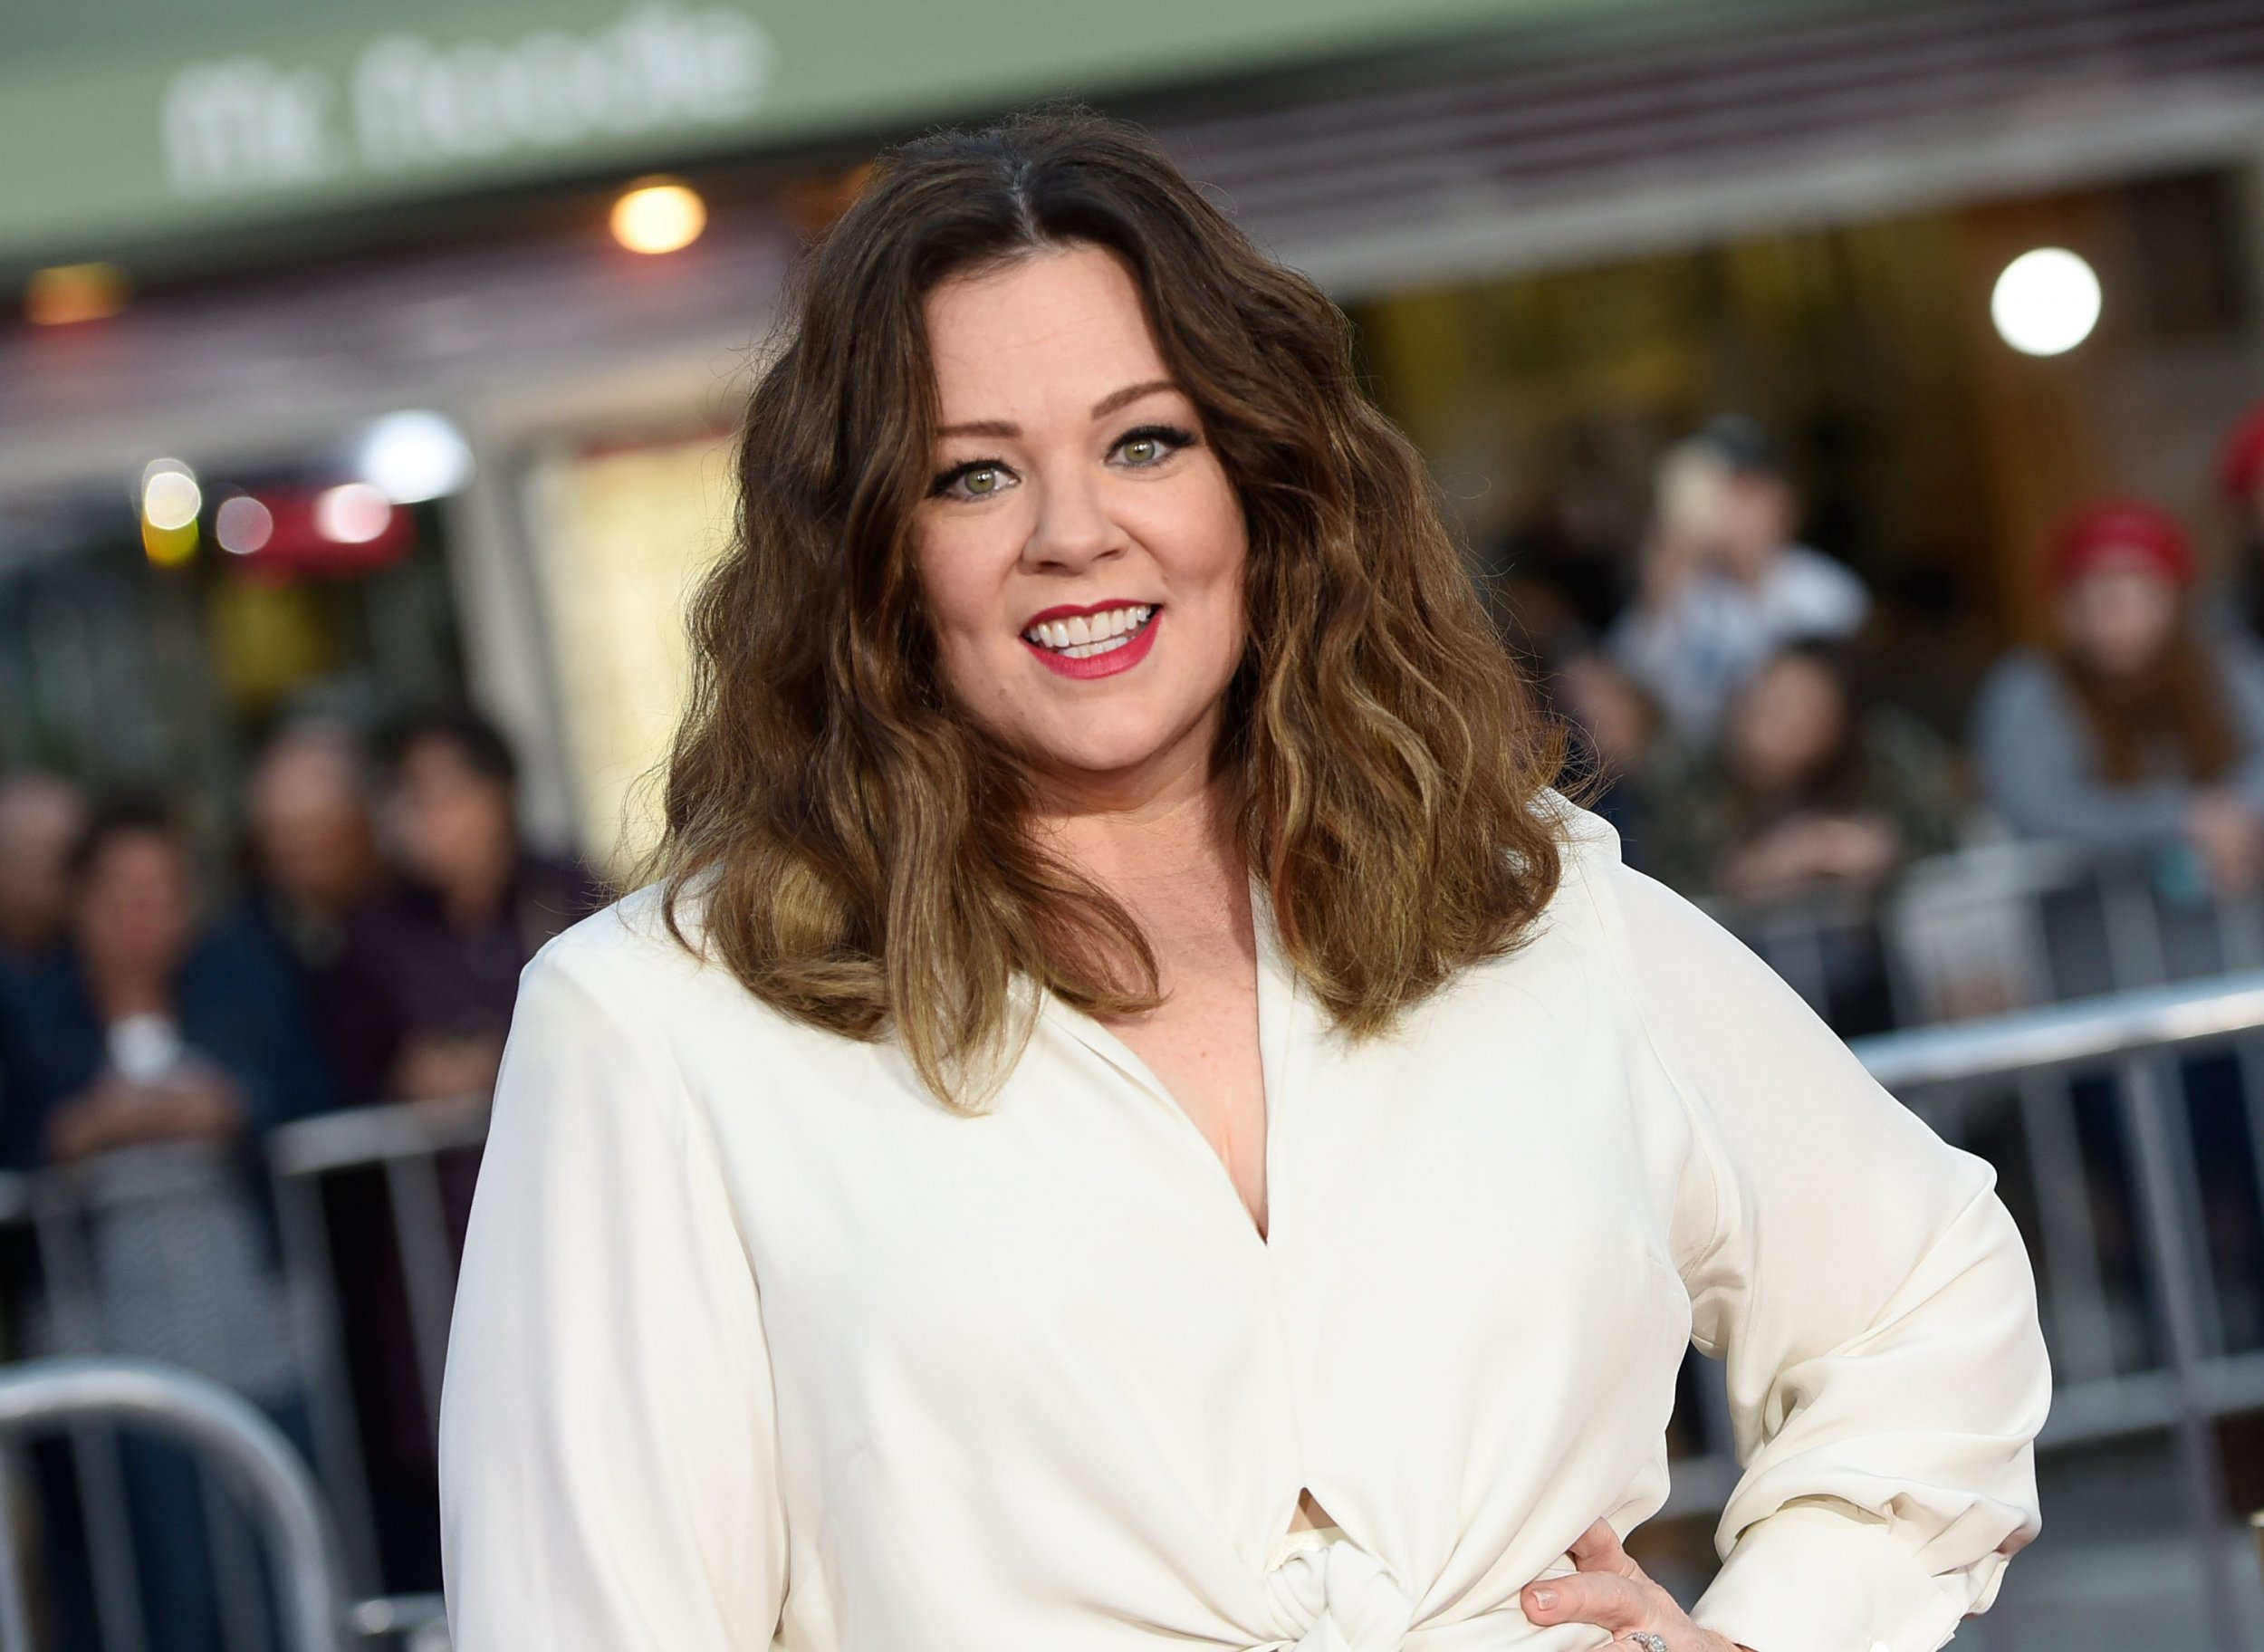 Melissa McCarthy at The Boss premiere